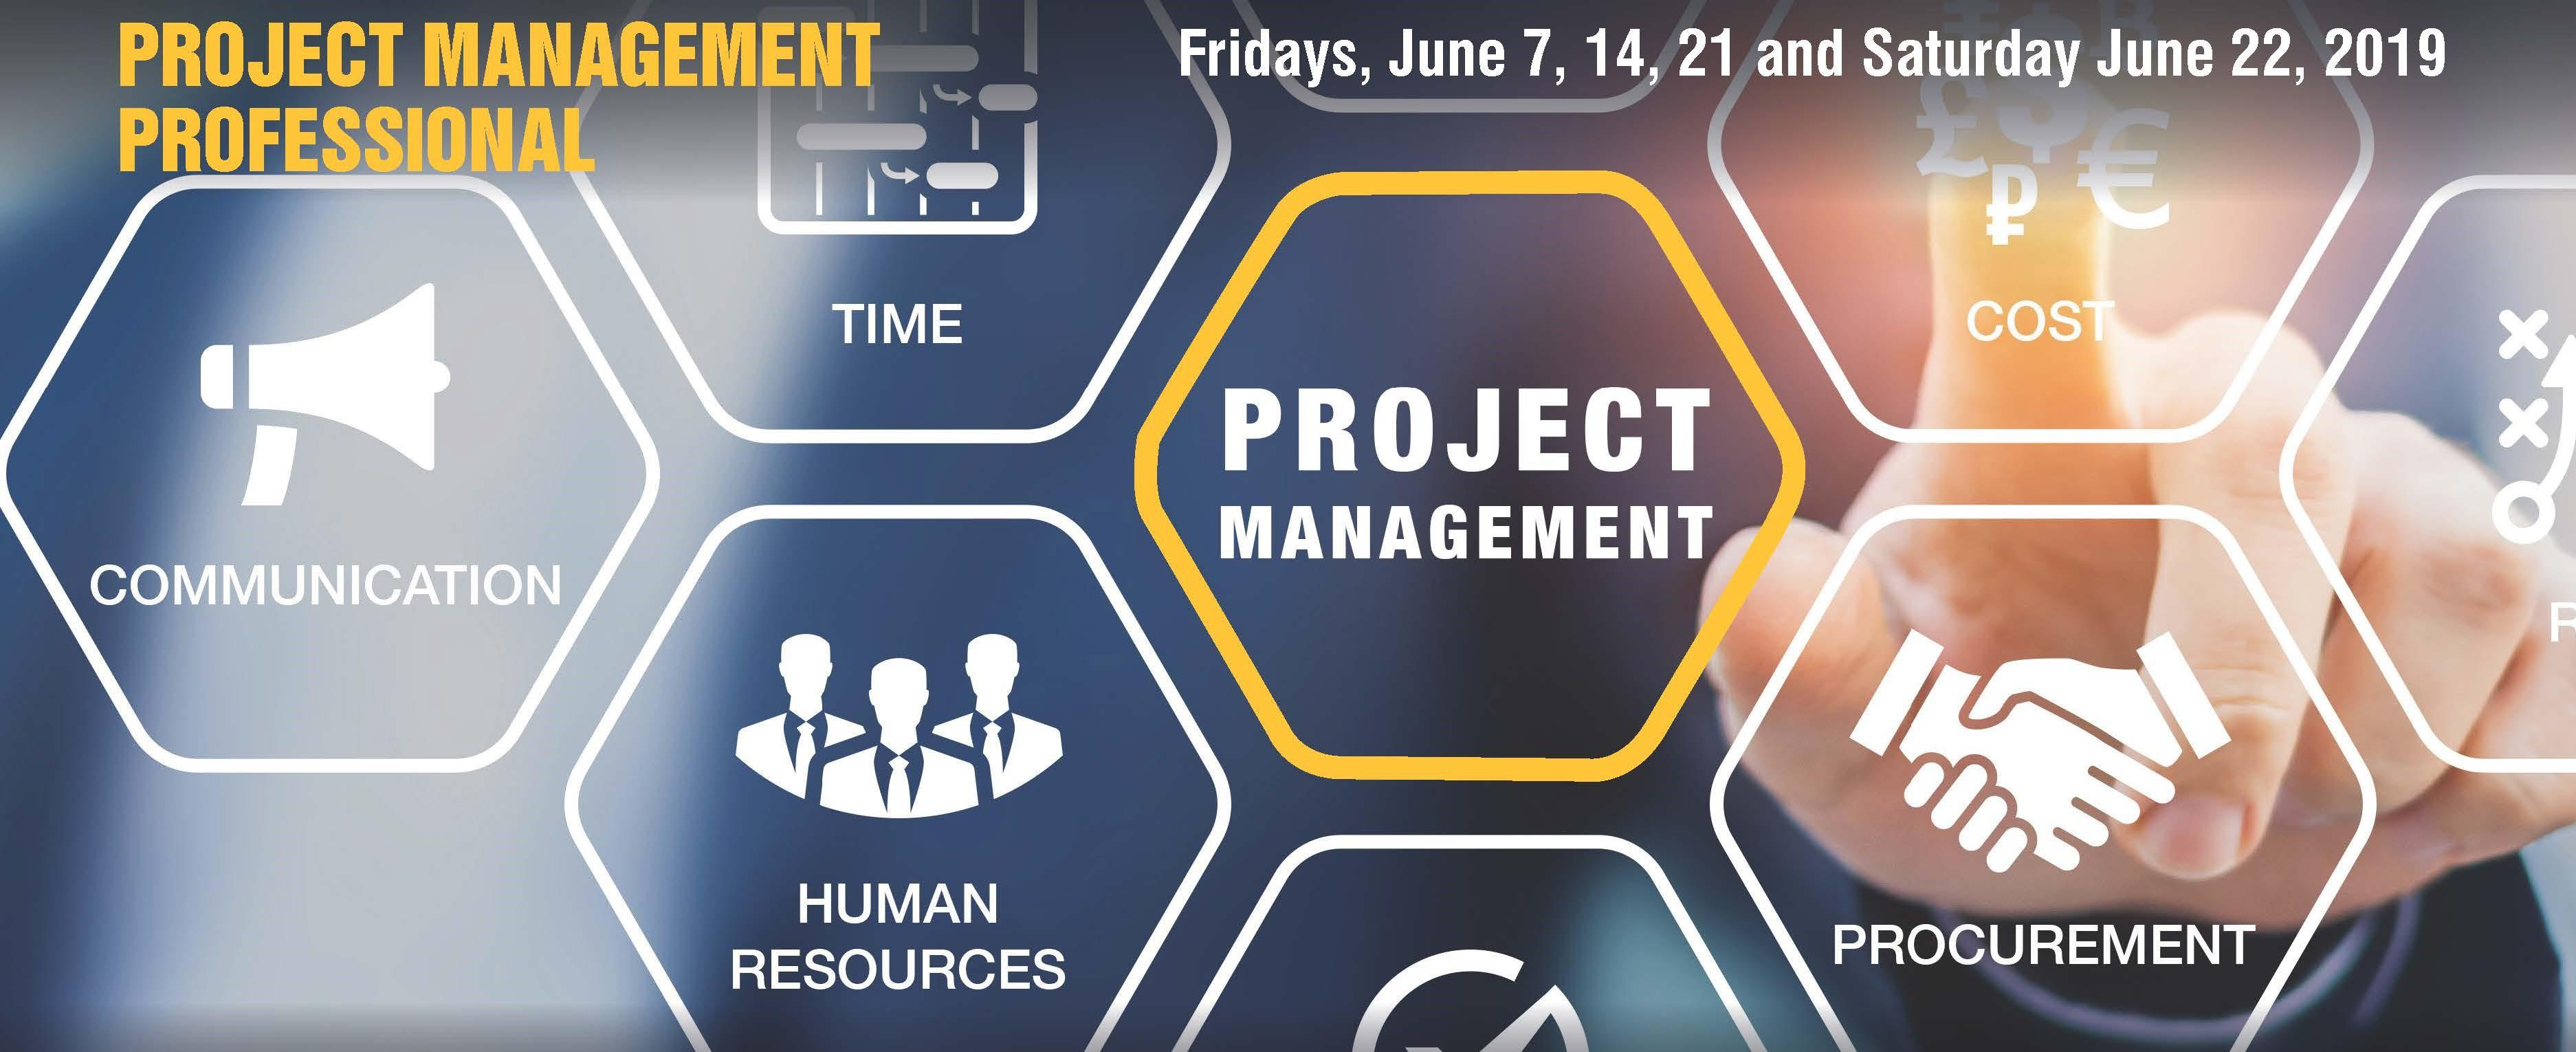 Project Management Professional Boot Camp